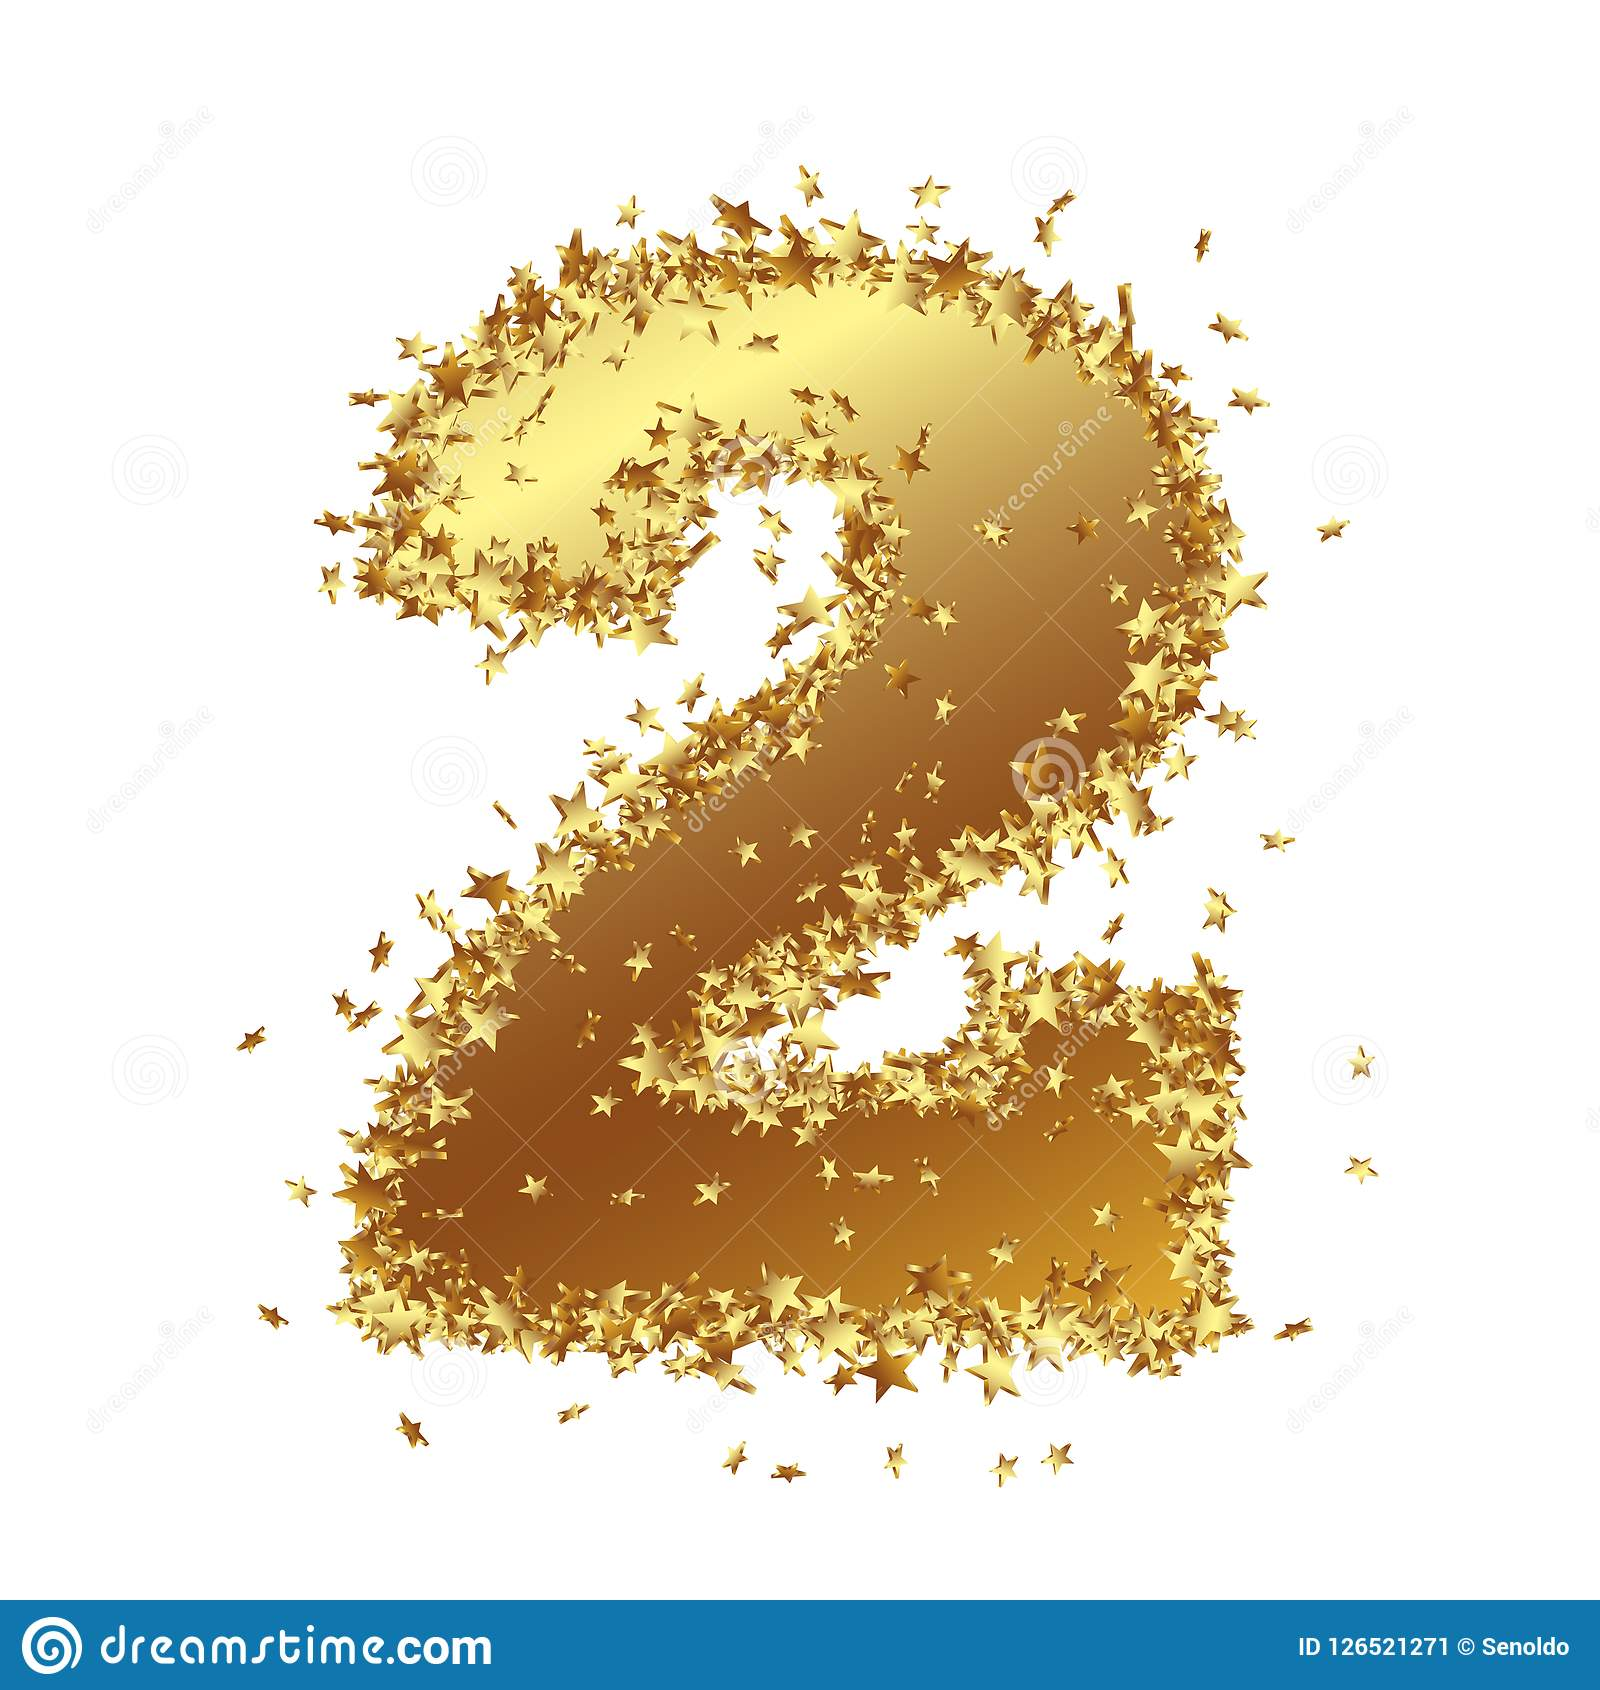 abstract golden number with starlet border two 2 birthday party new years eve jubilee number figure digit graphic illustration isolated on